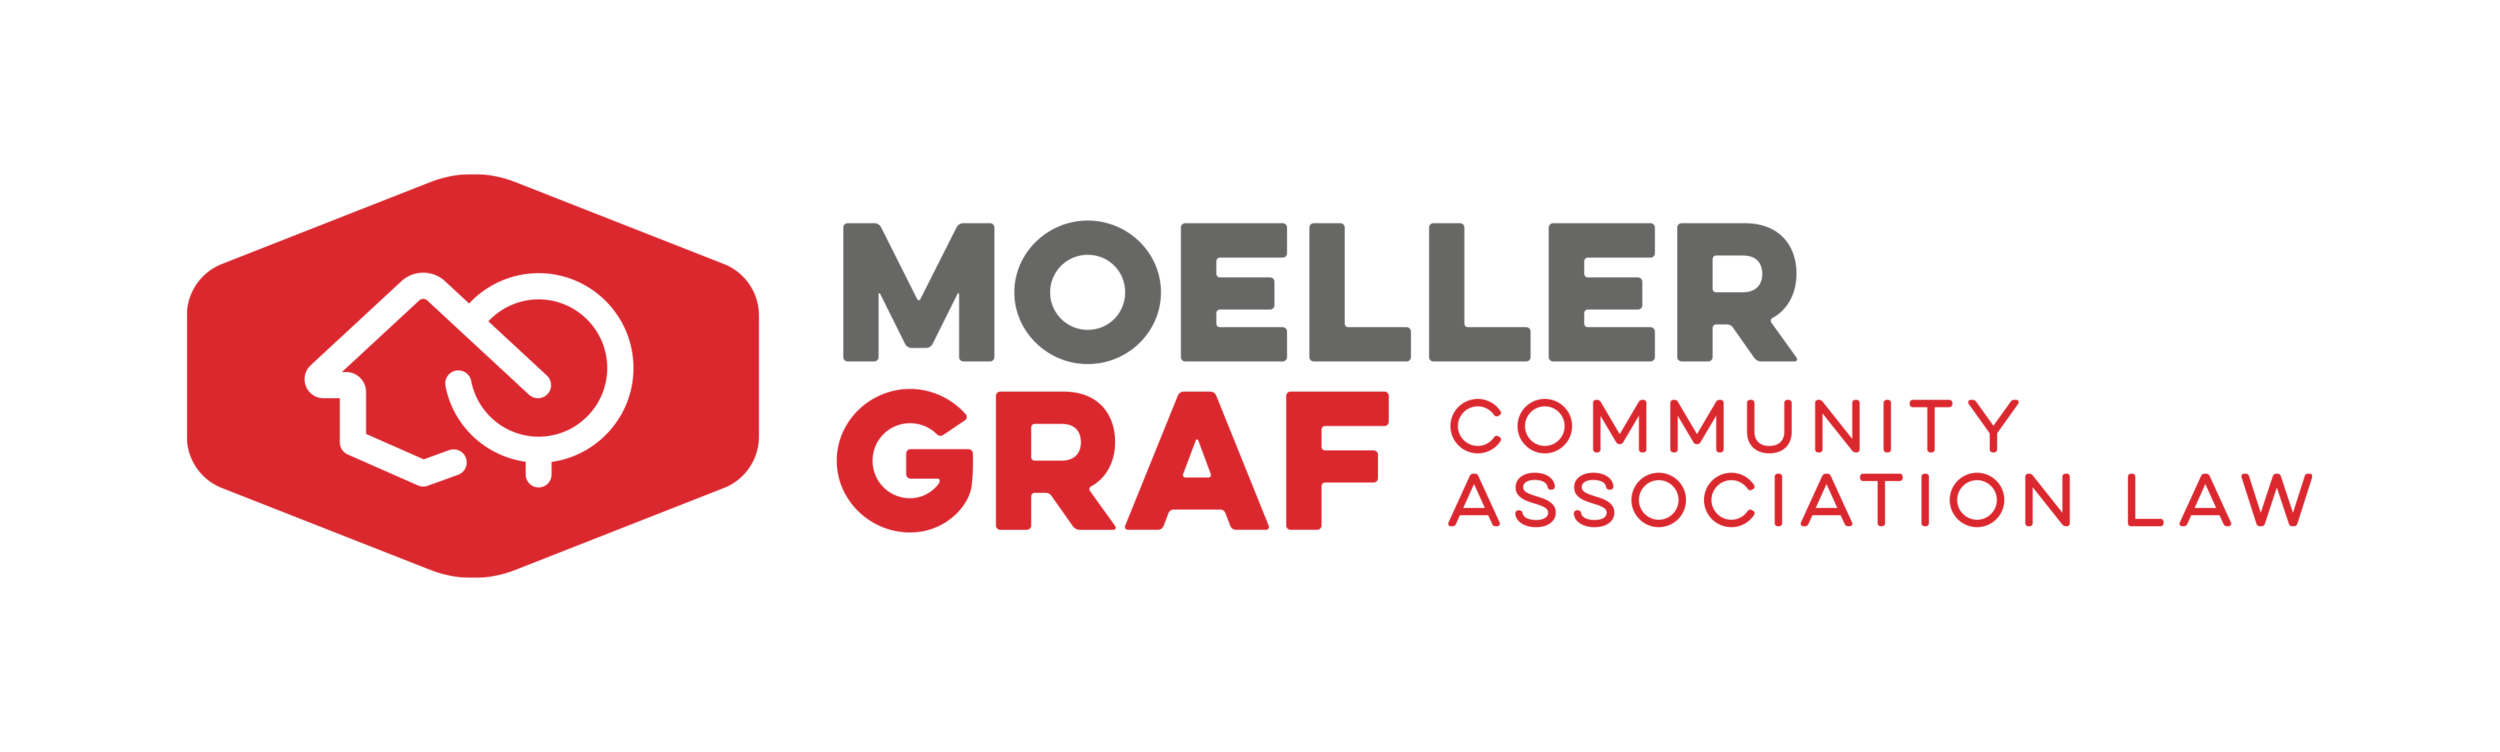 Moeller-Graf-Logo-Horizontal-Color-1-with-Tagline.png